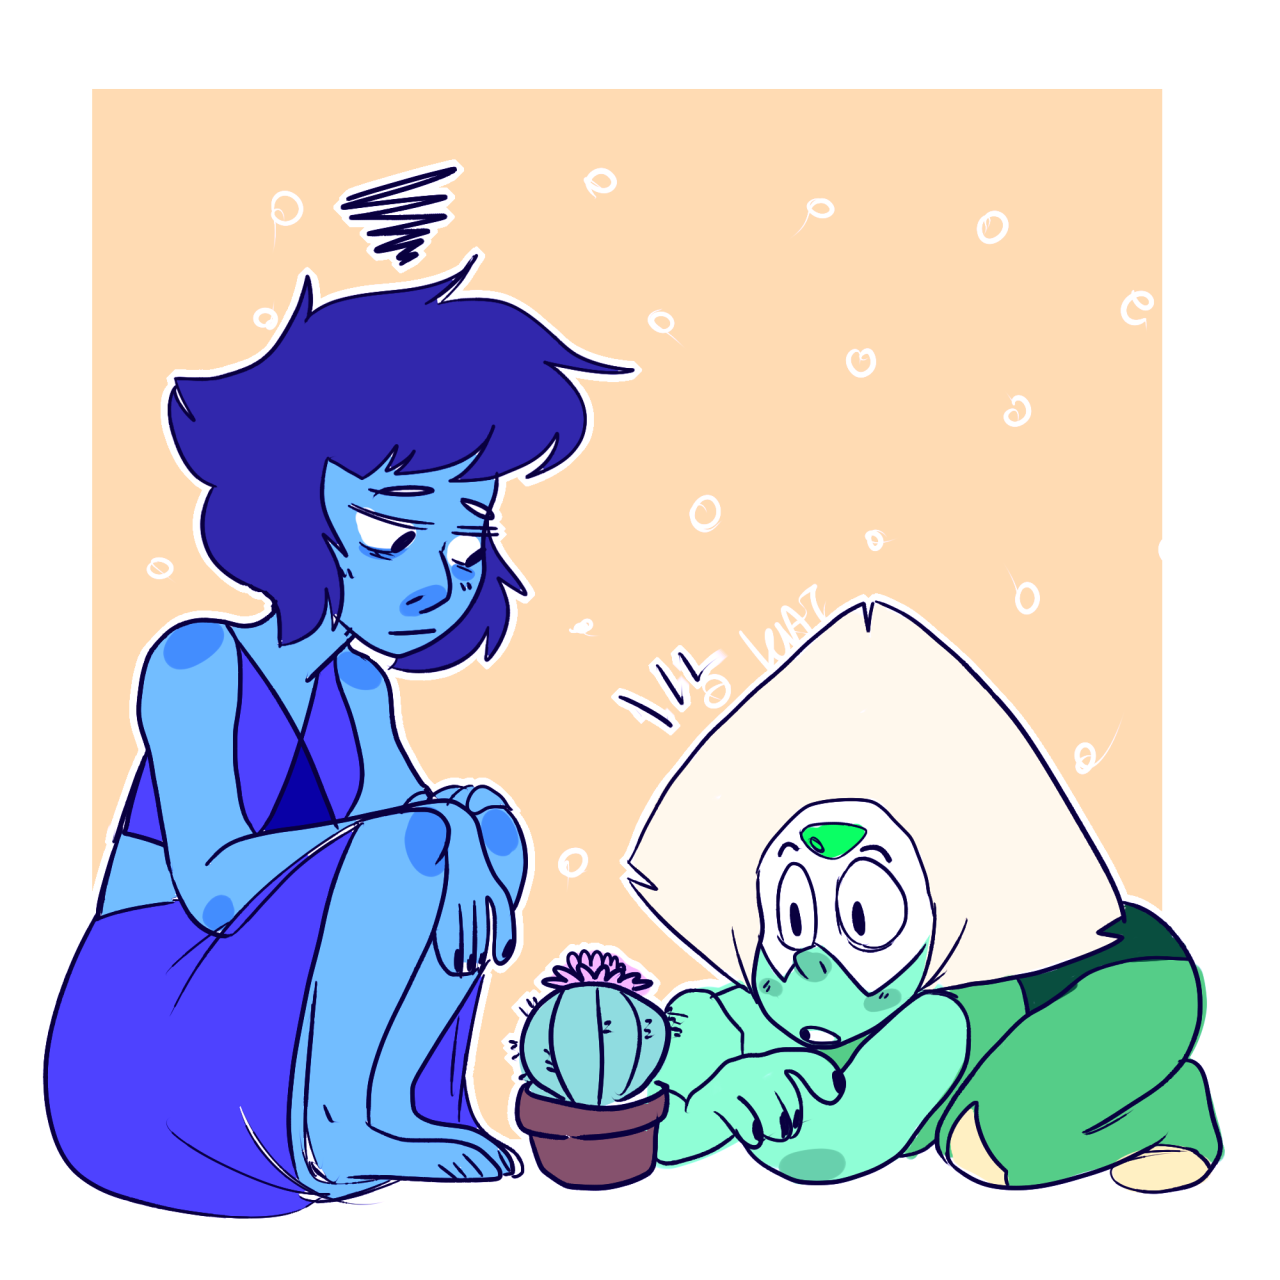 if lapis and peri had a baby it would be a cactus